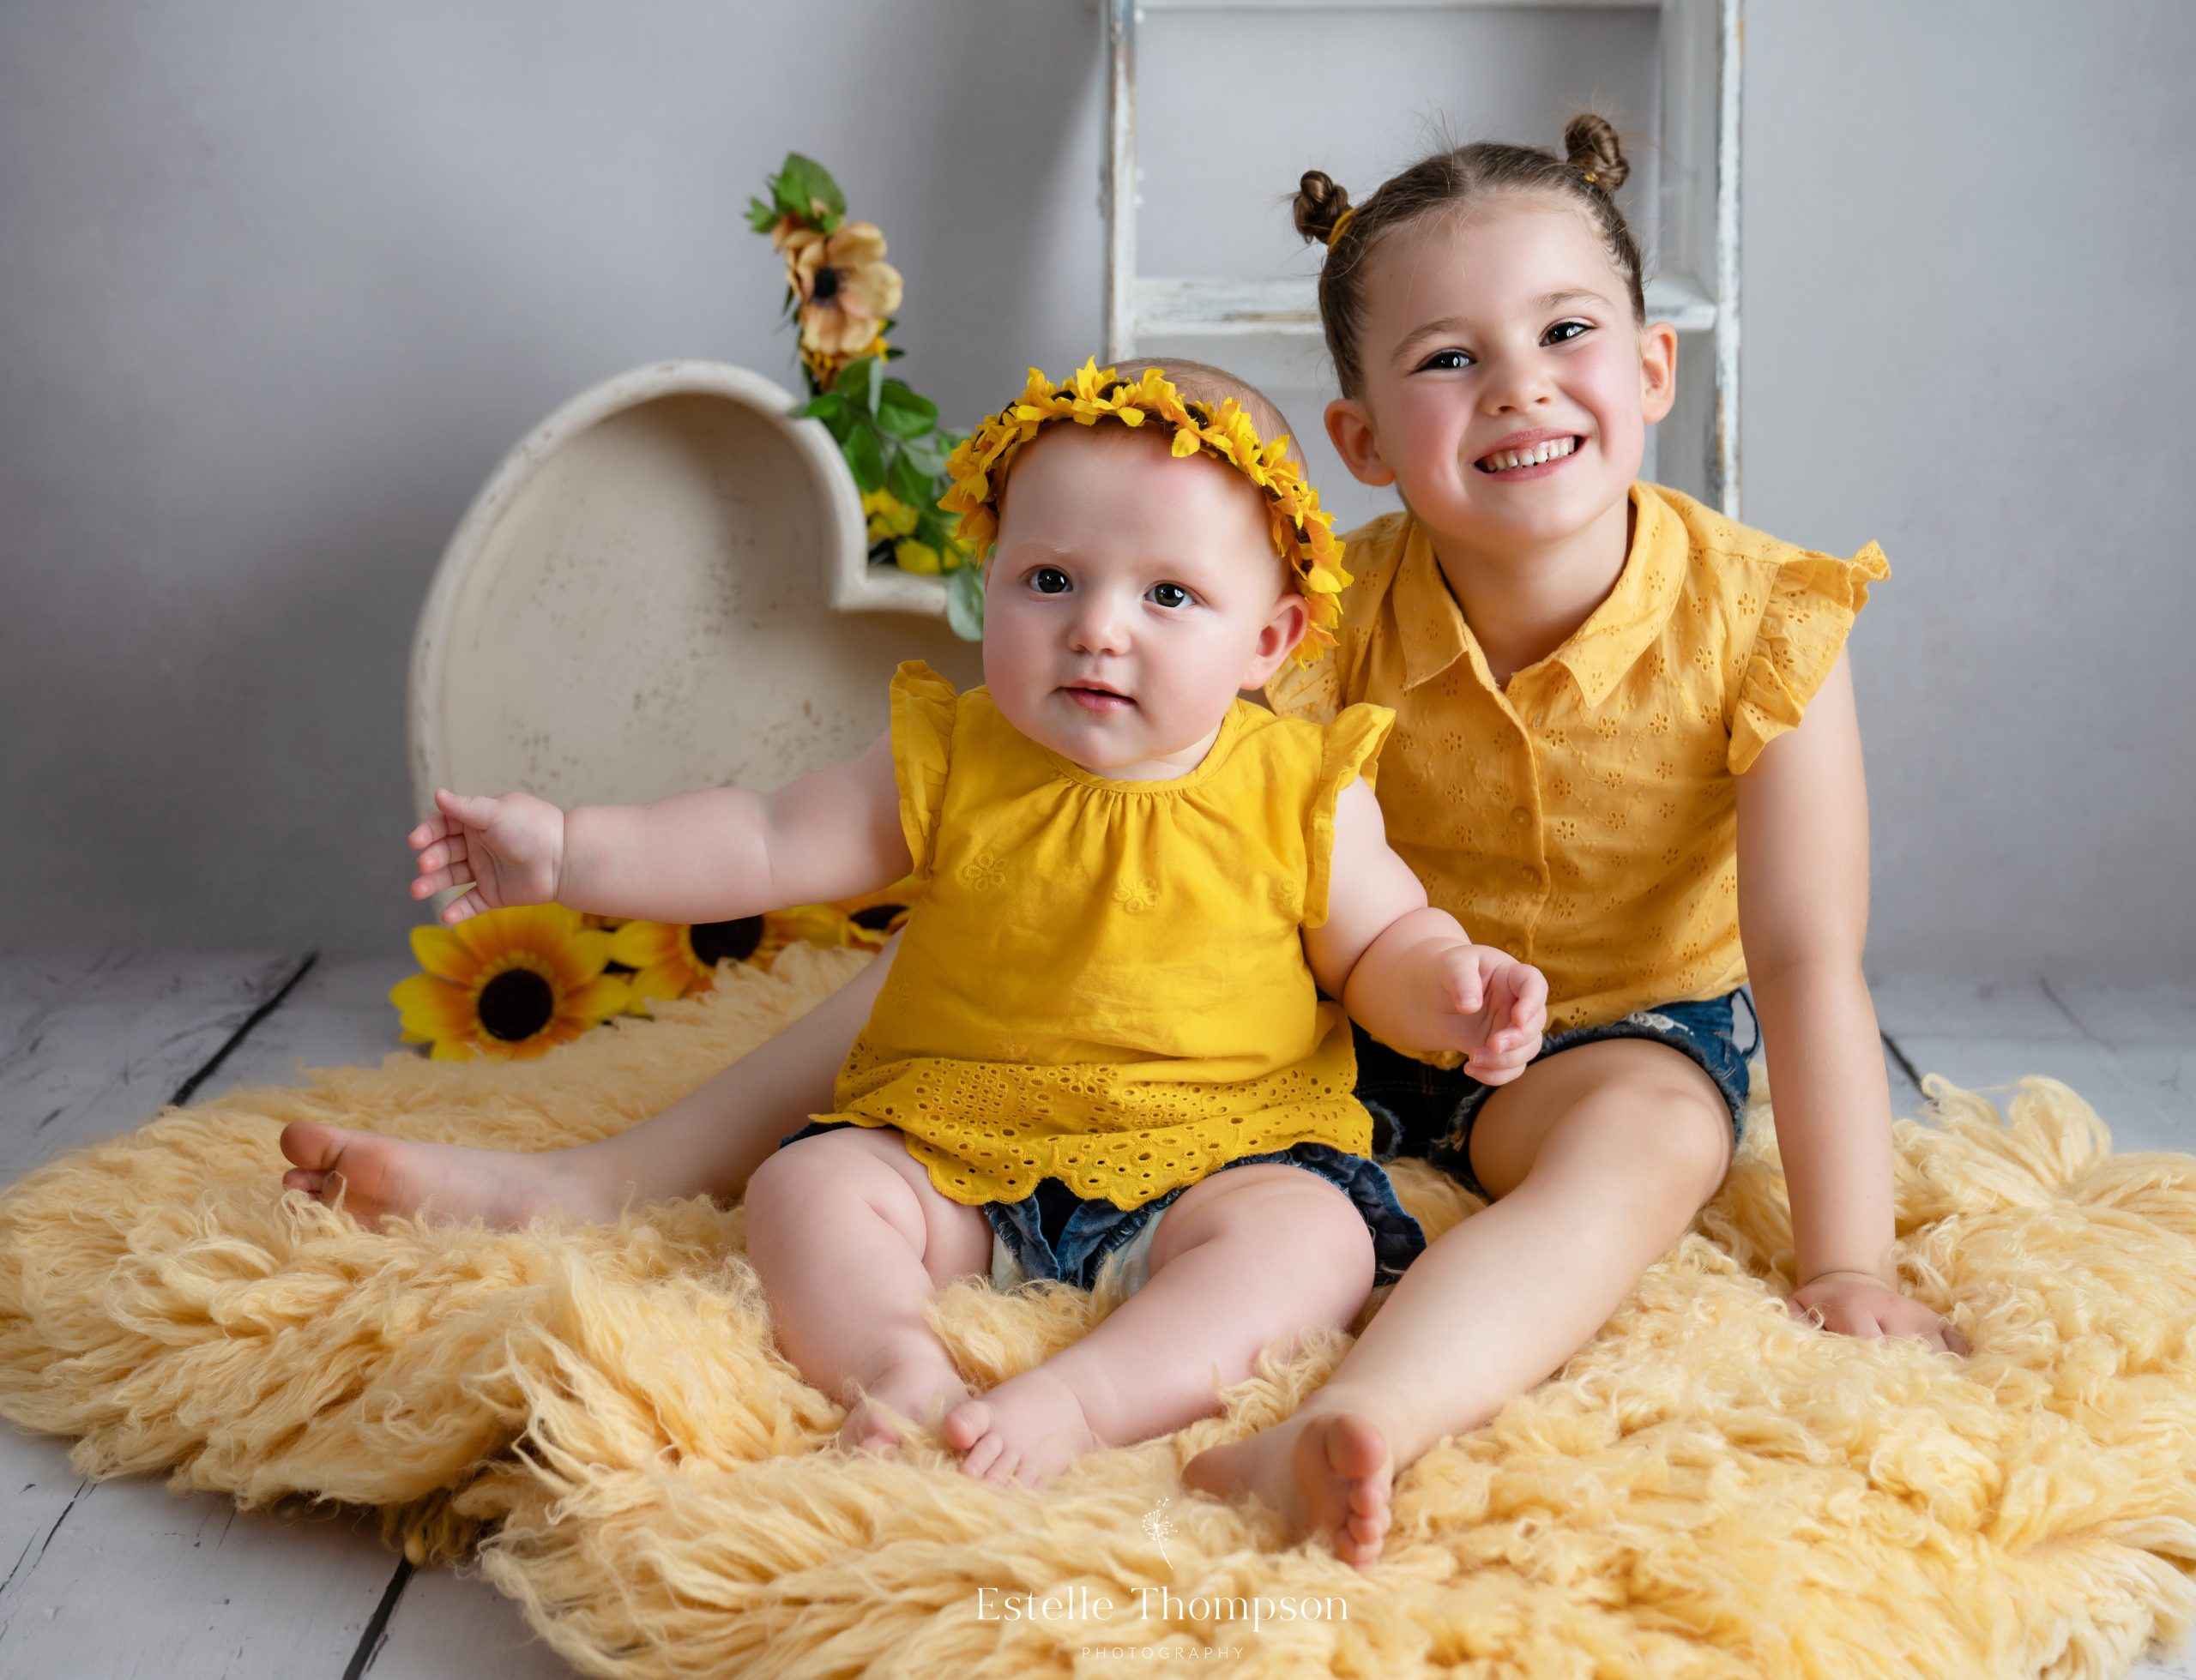 Two sisters dressed in yellow sit to have their photograph taken at a sevenoaks baby photography studio